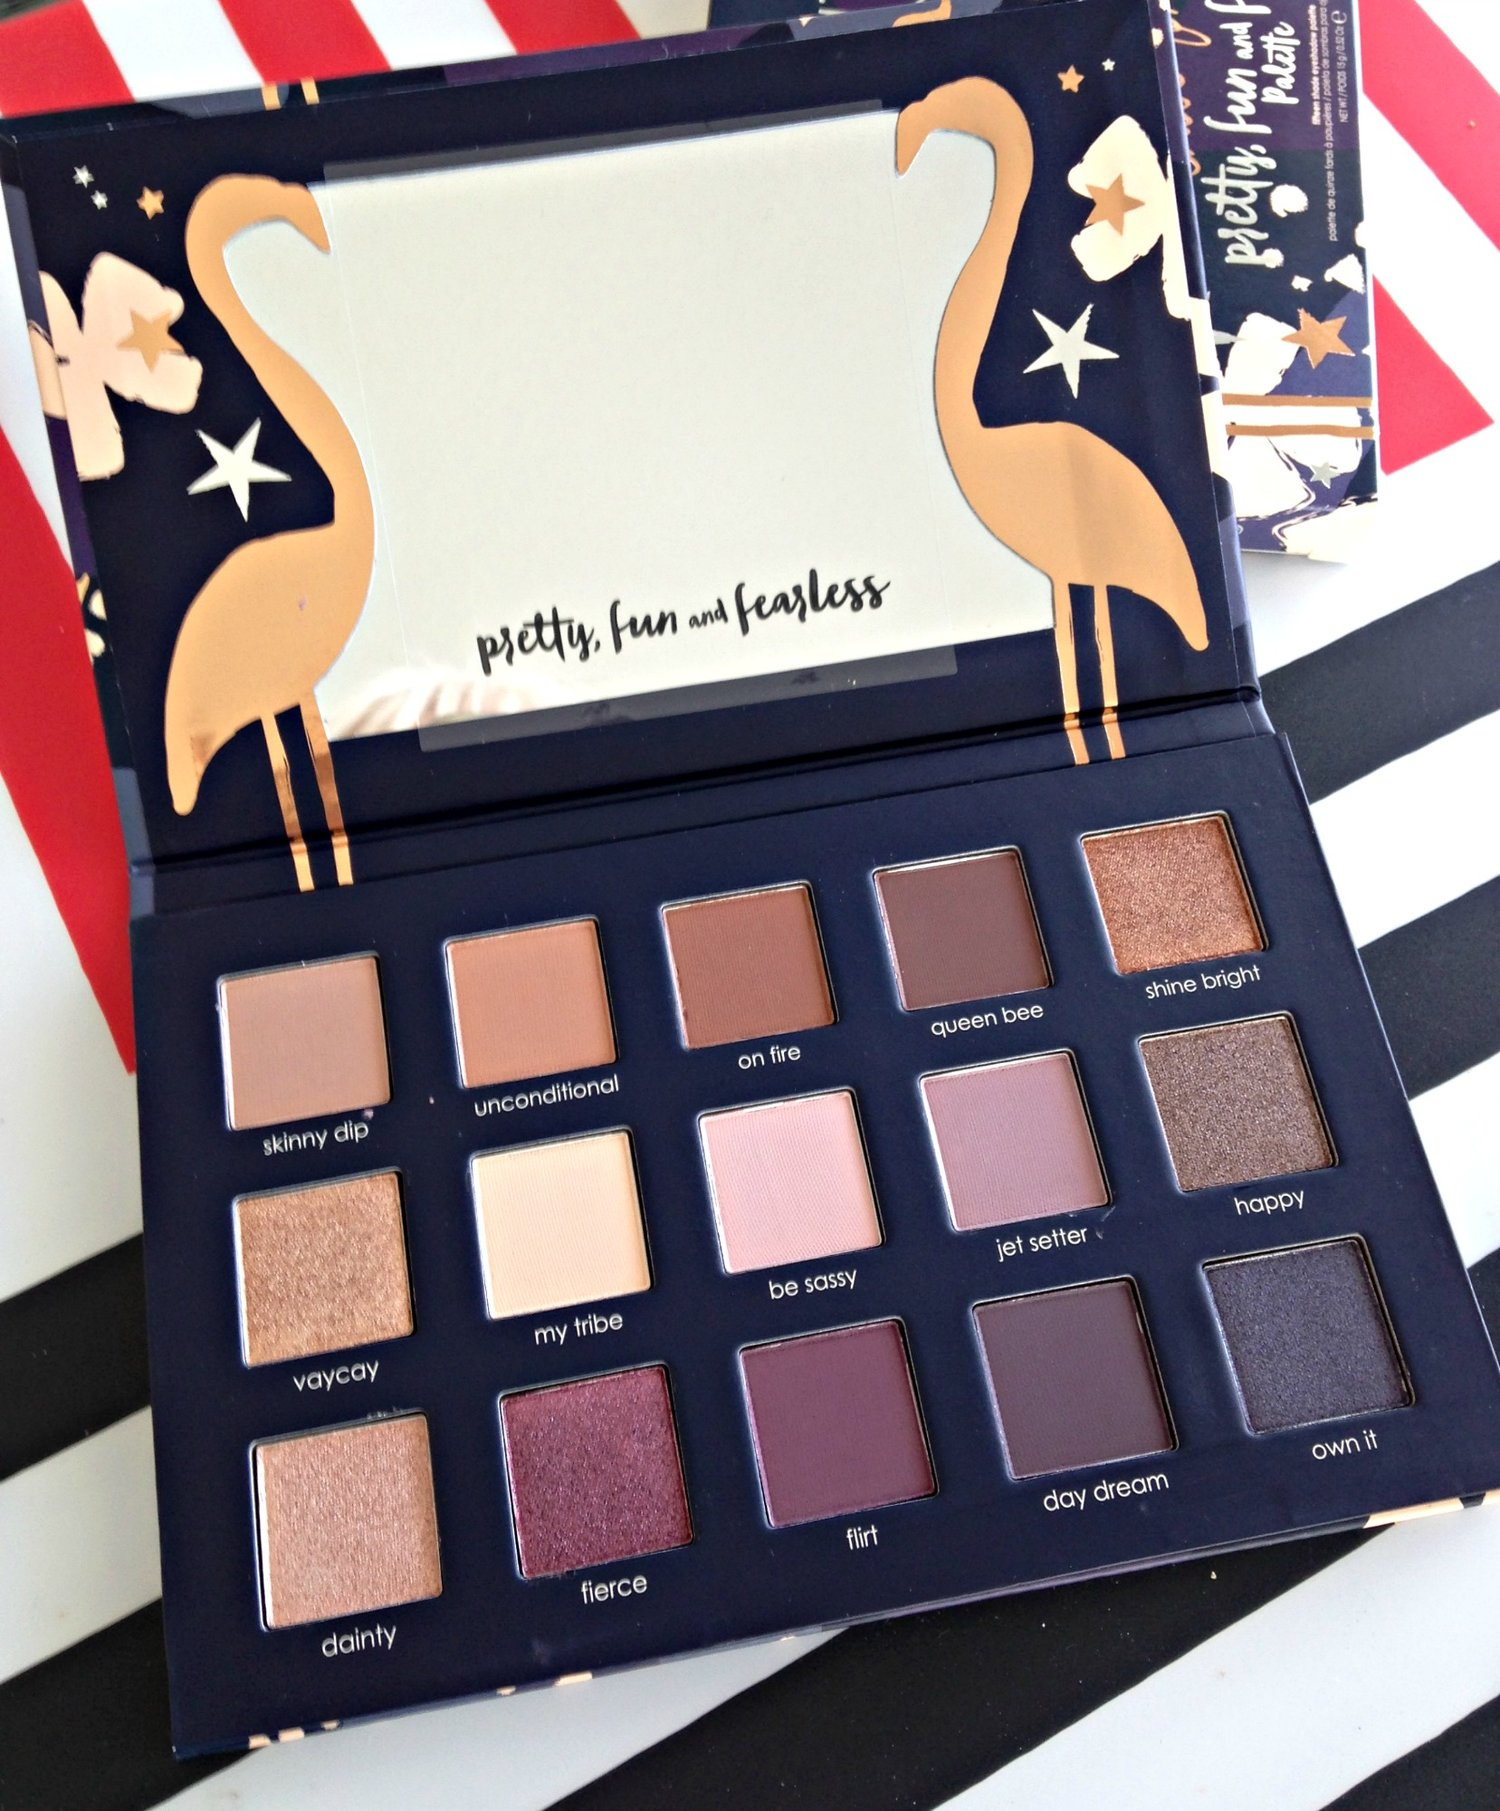 Ciate London x Chloe Morello Pretty, Fun and Fearless Eyeshadow Palette Review, Swatches and Photos